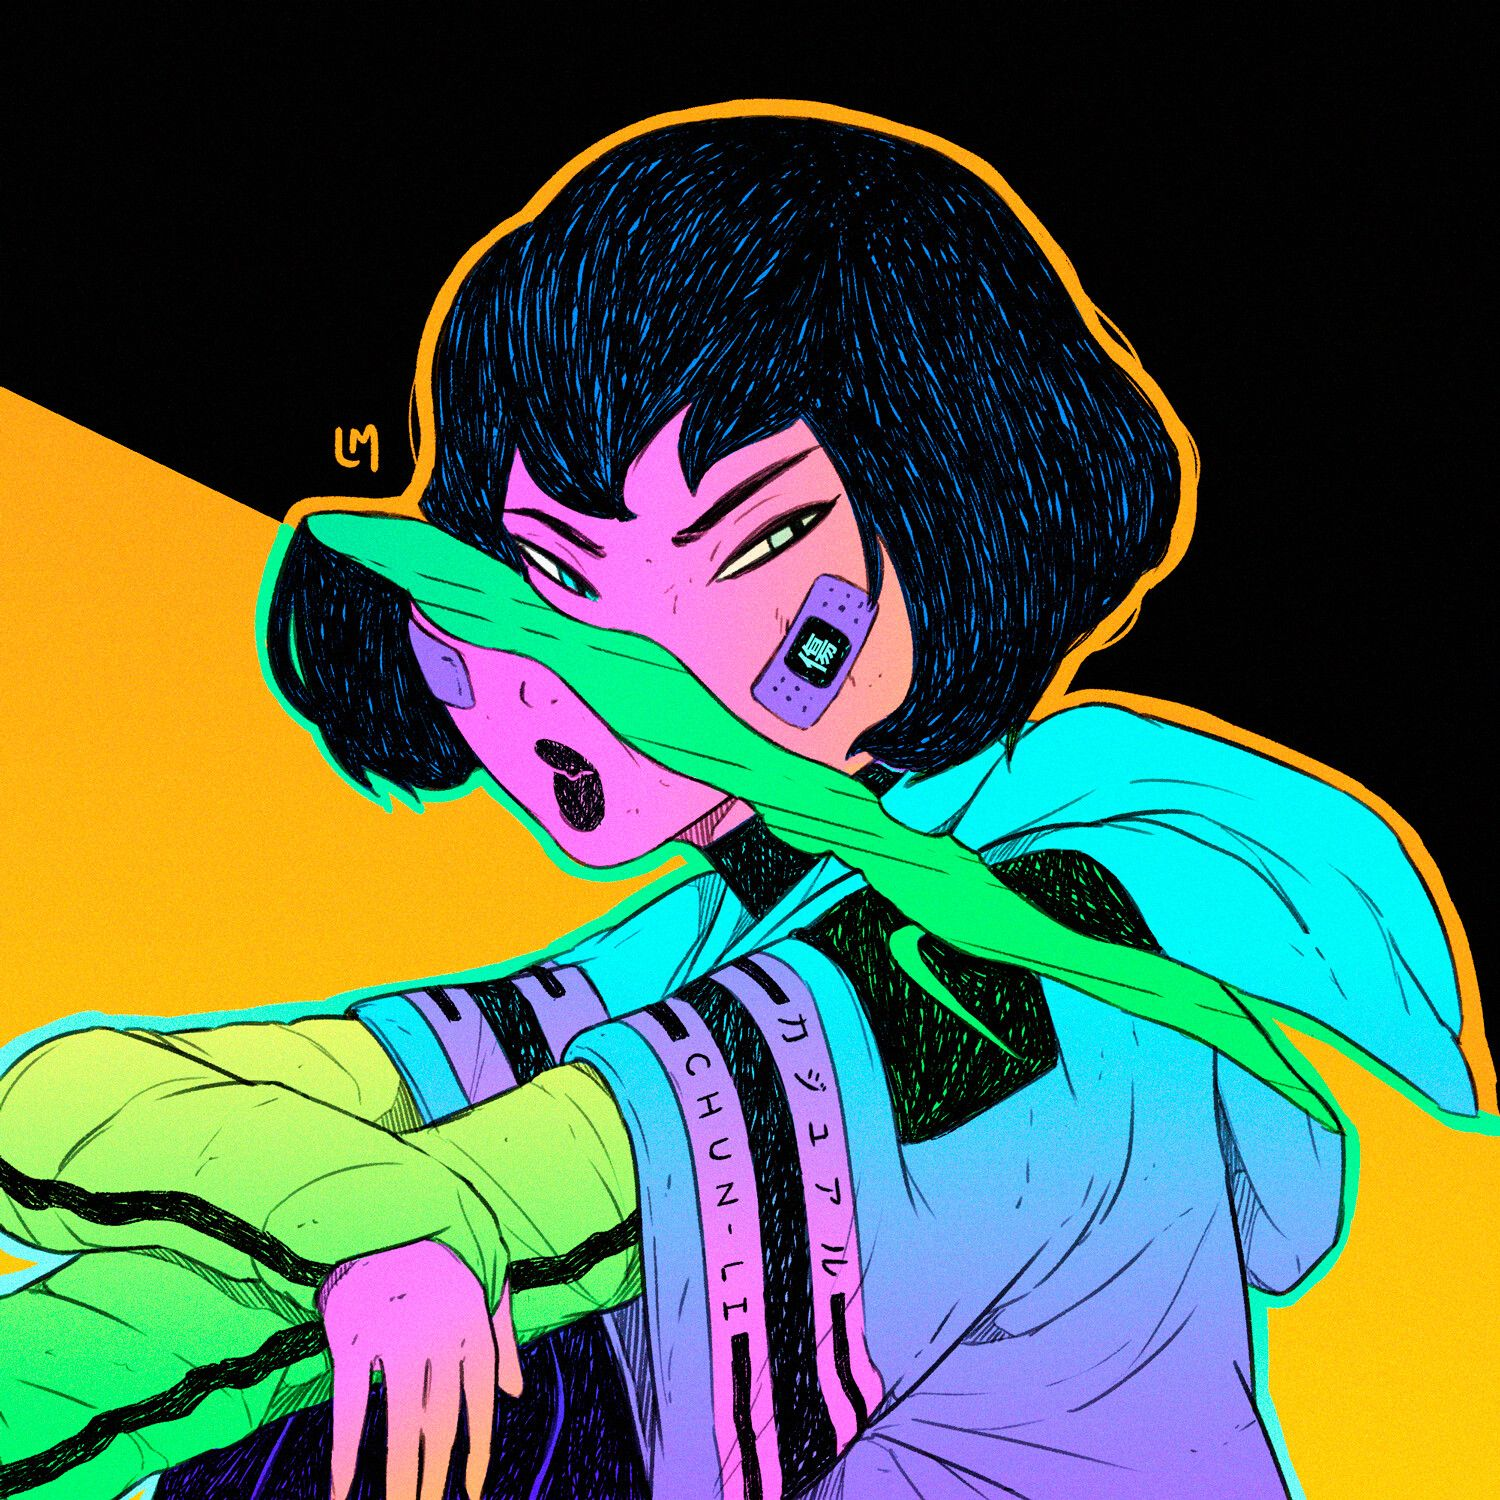 ArtStation - Casual Vaporwave Girls - Style and Color ...